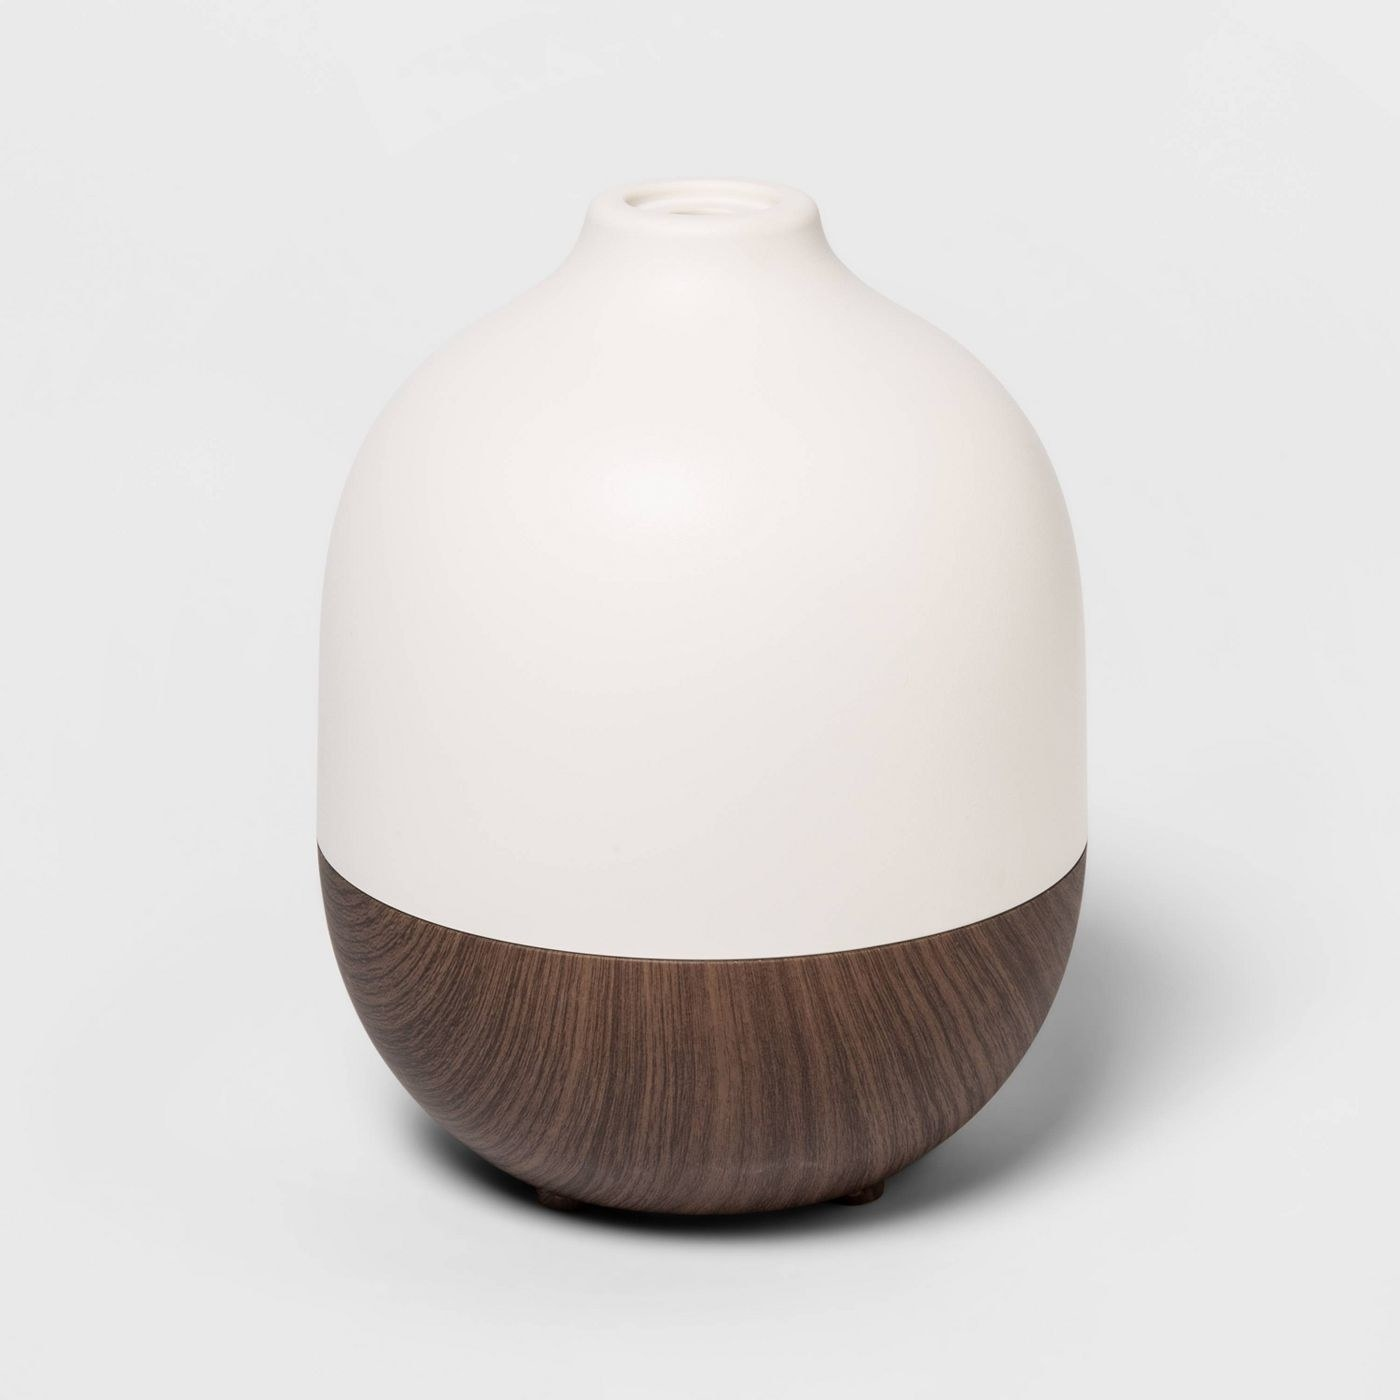 oval shaped oil diffuser with white on the top and wood print on the bottom